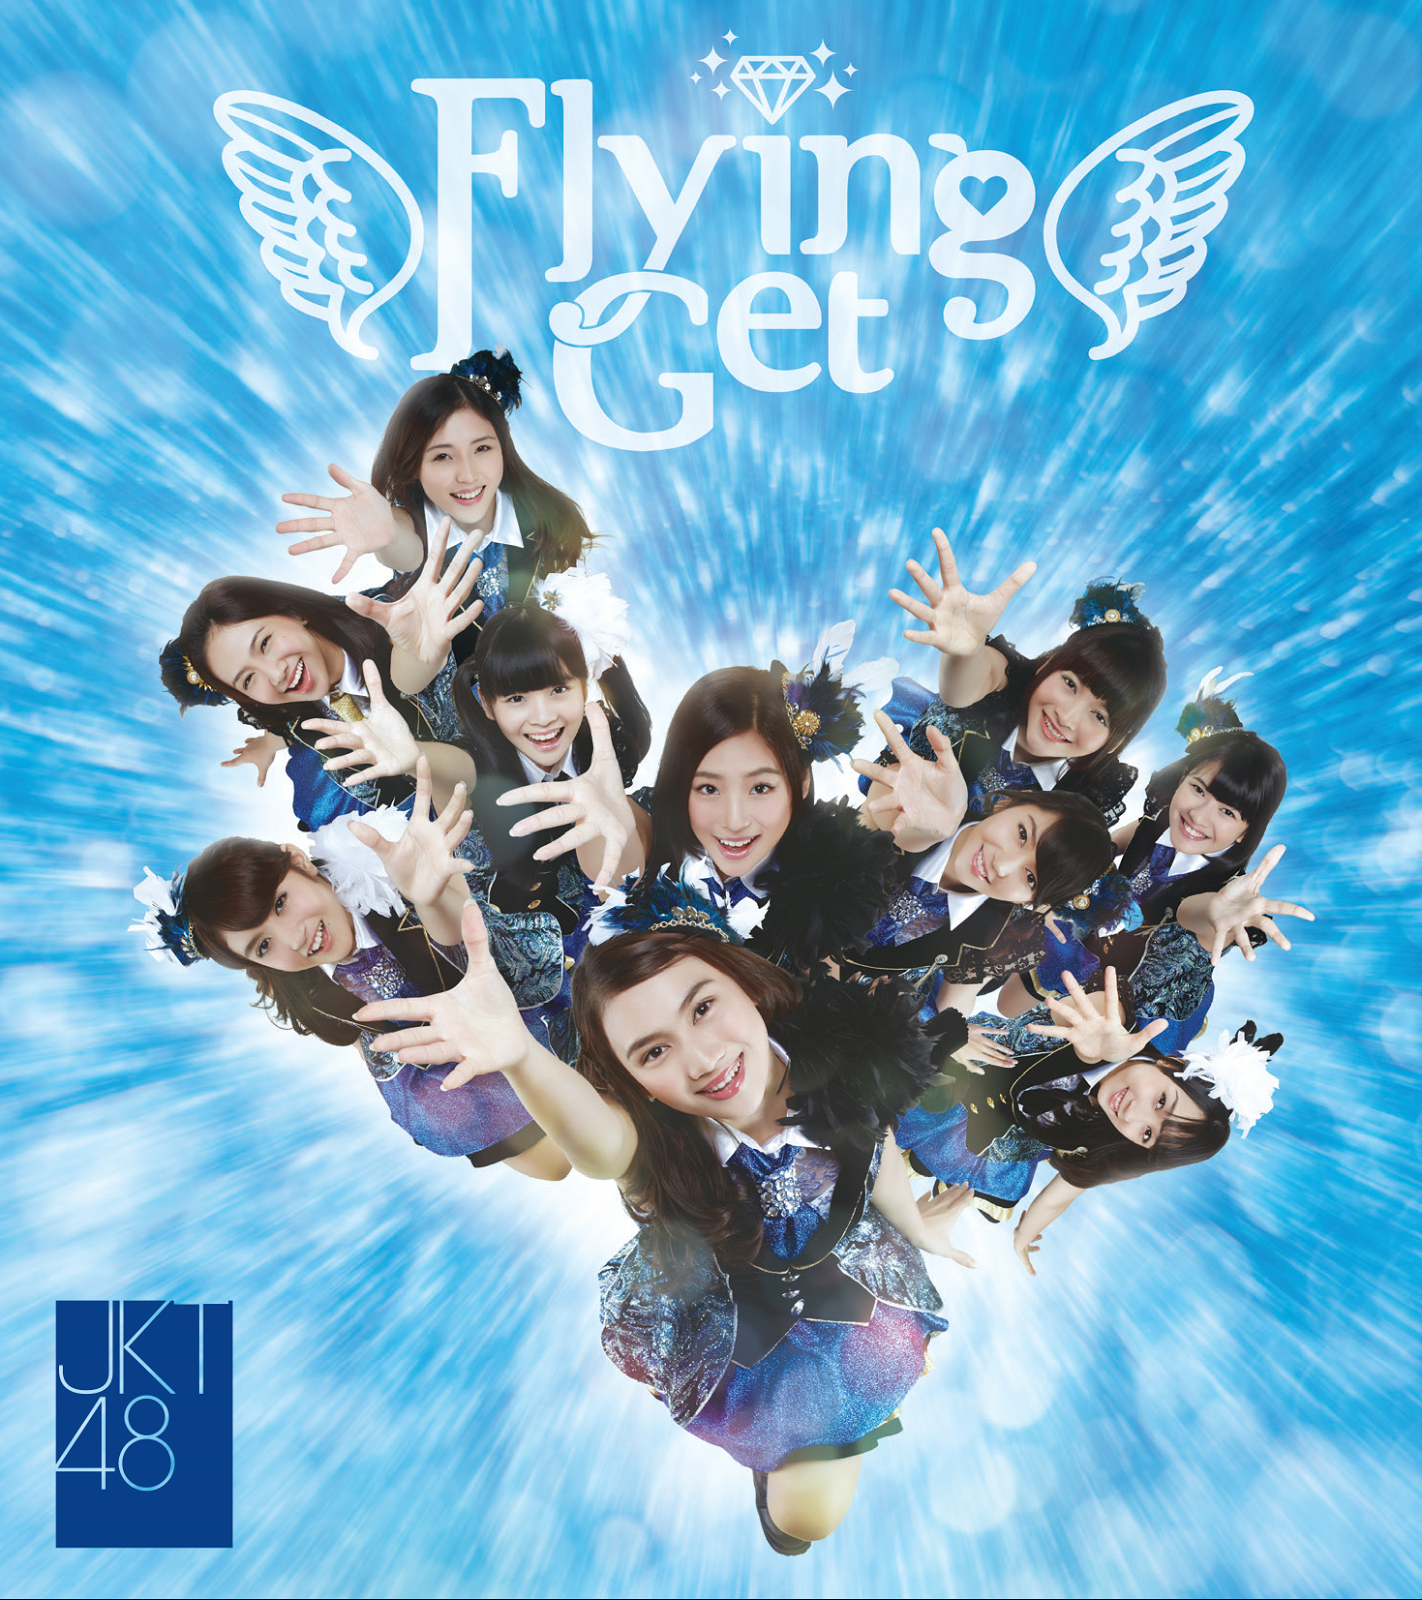 JKT48 5th Single - Flying Get cover Type Alfa